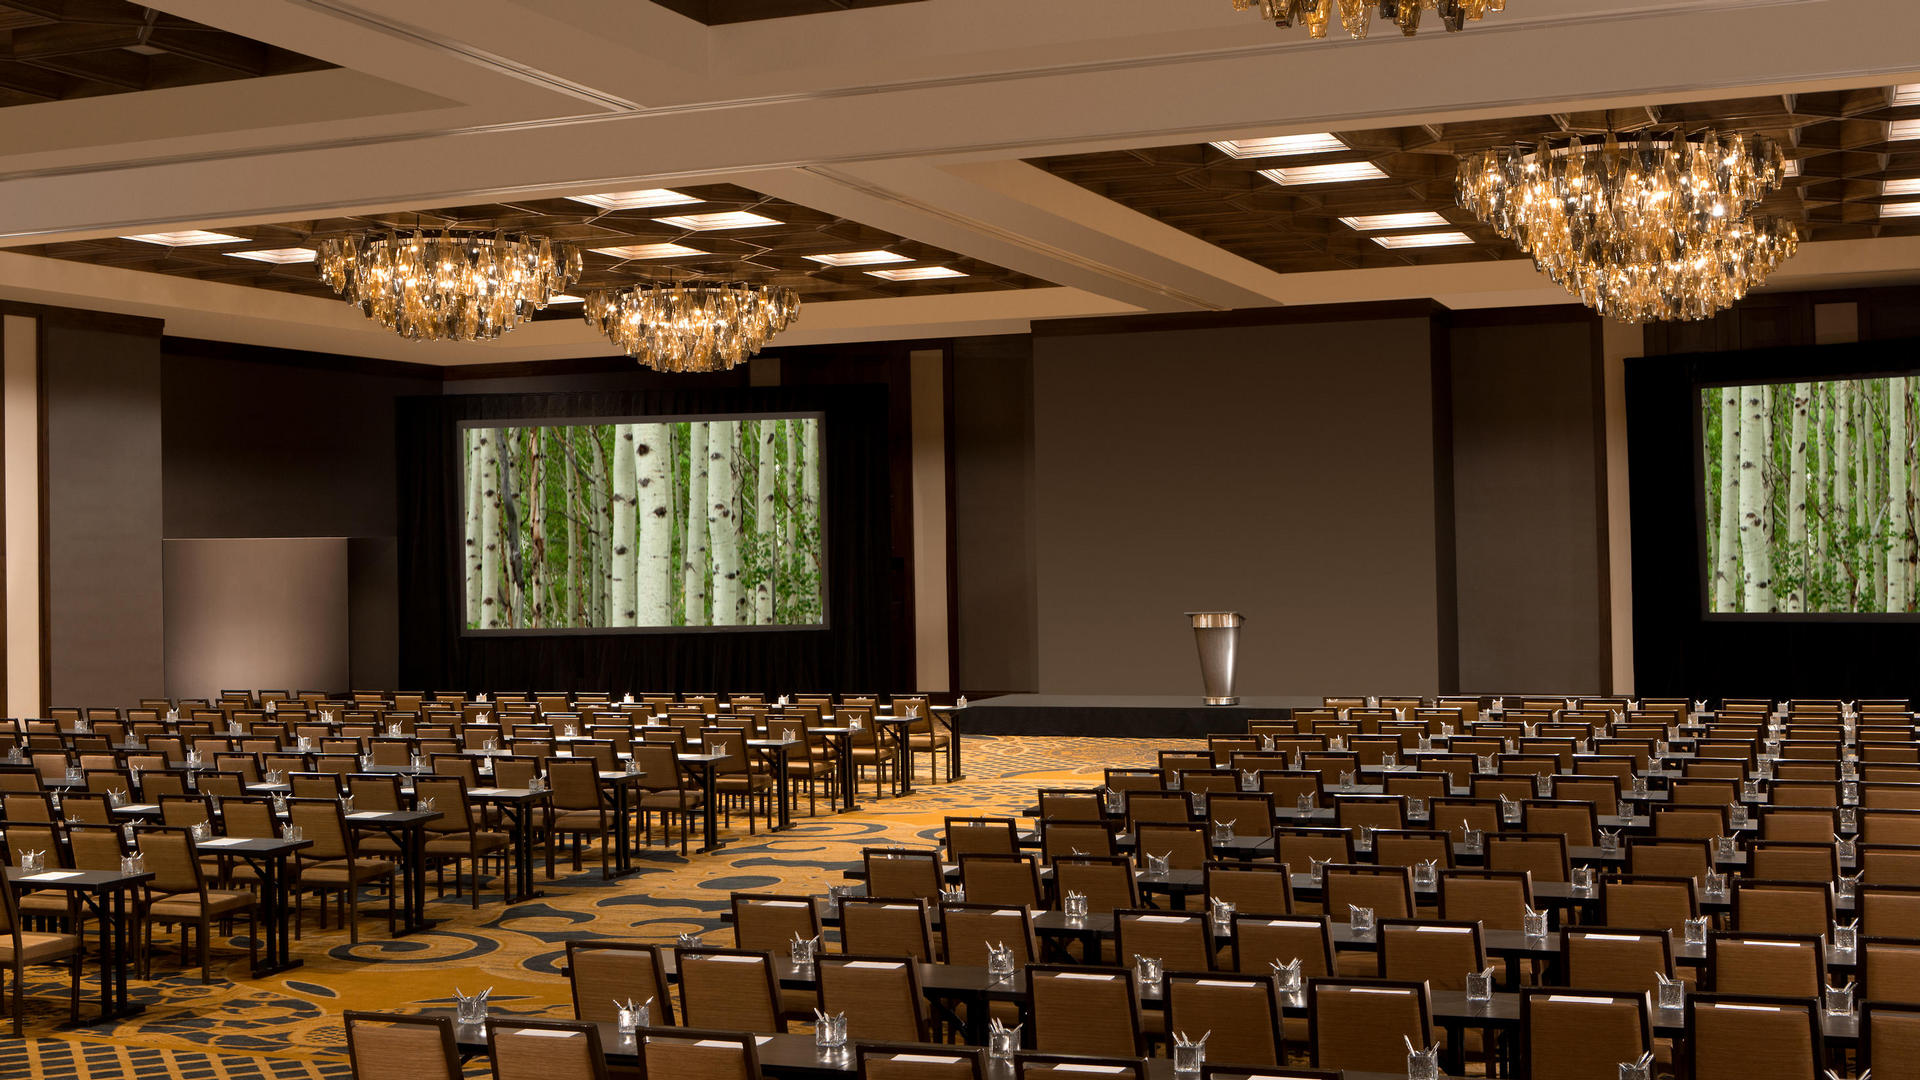 large meeting conference room with chairs lined up and a stage